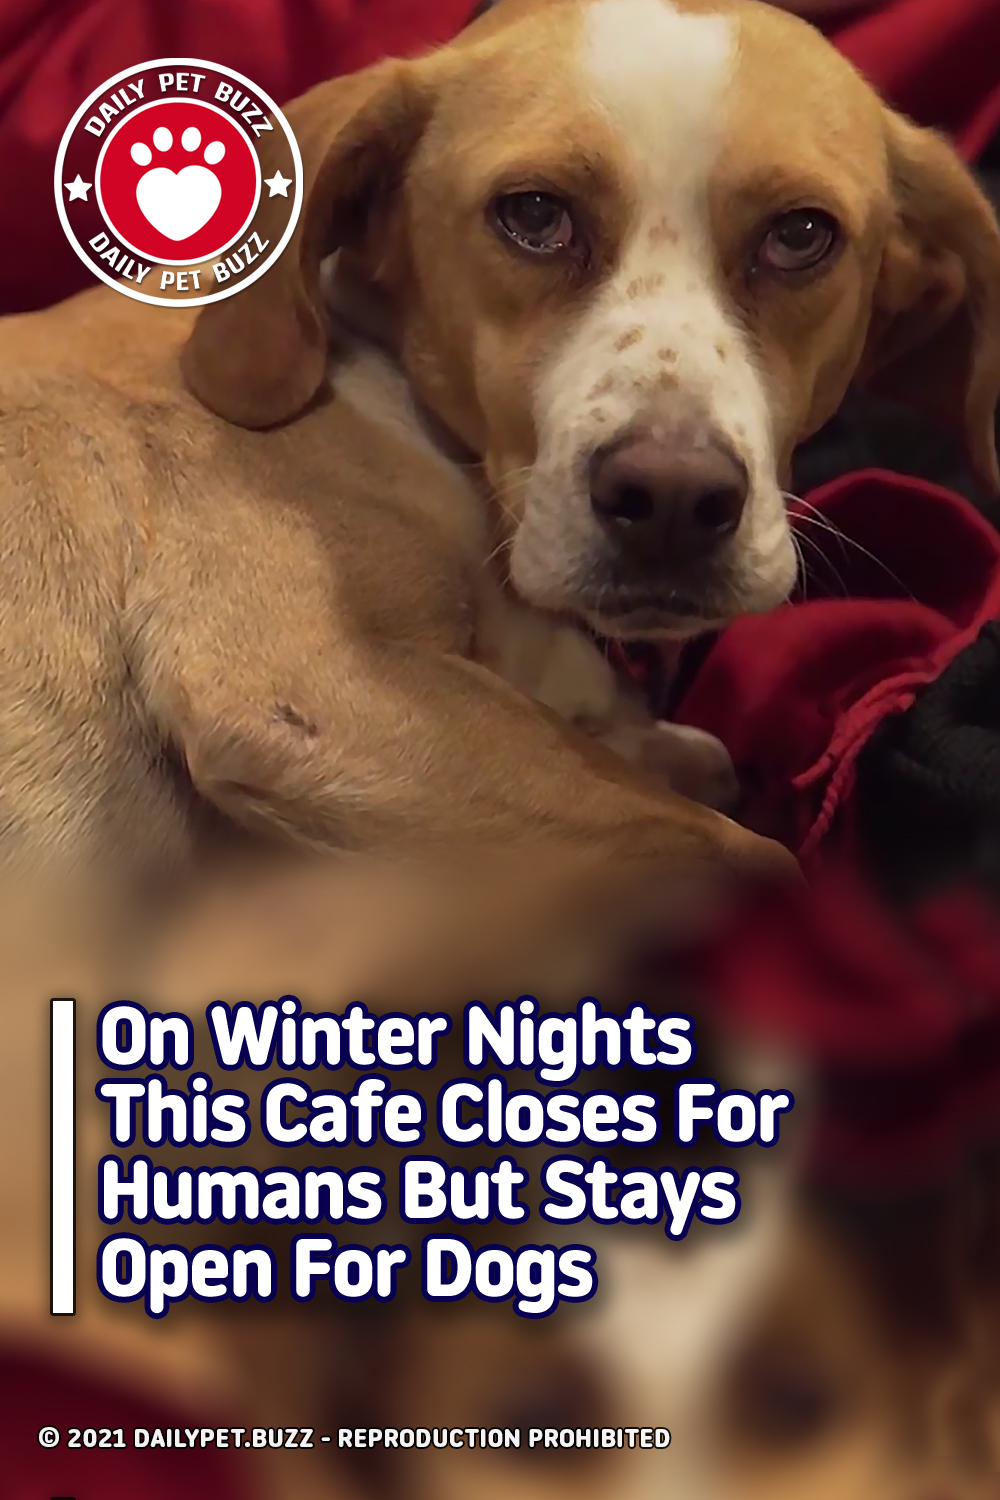 On Winter Nights This Cafe Closes For Humans But Stays Open For Dogs